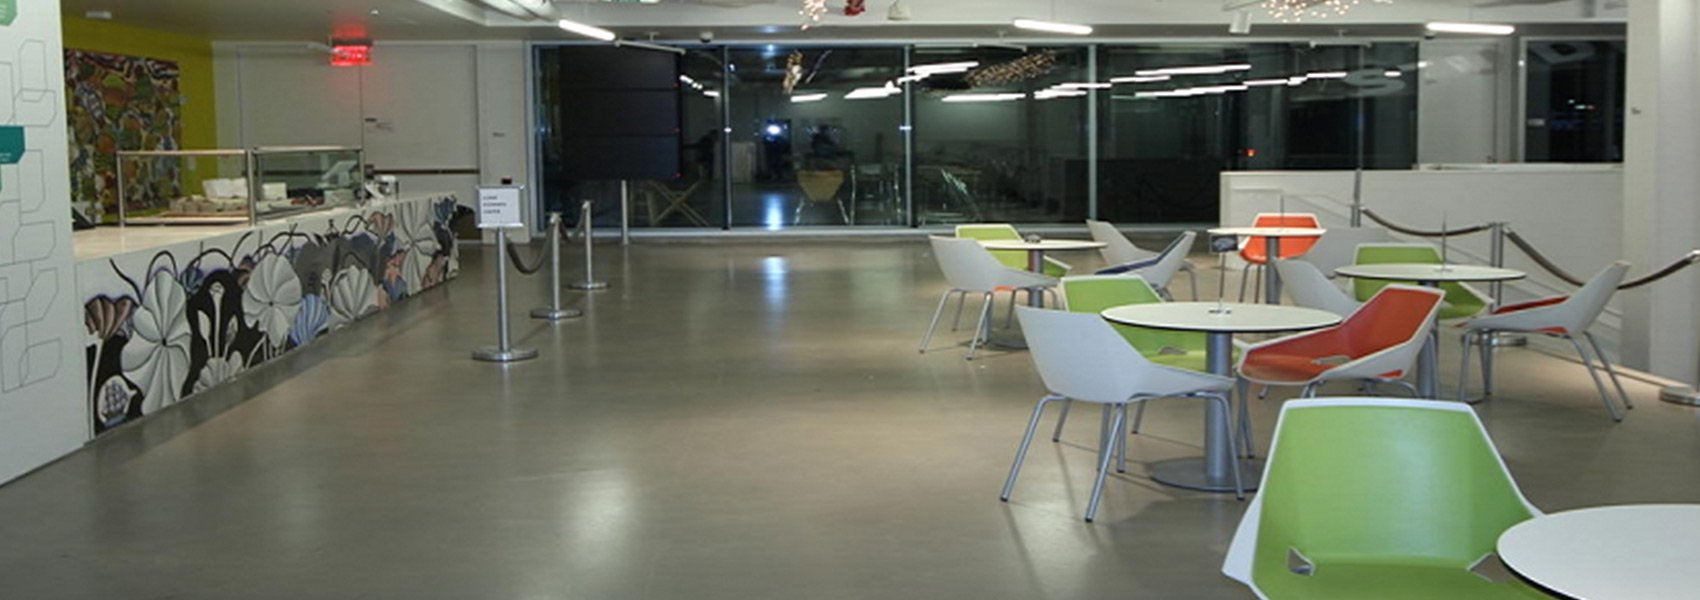 Epoxy Floor Solutions reviews | Flooring at 4351 W Roosevelt Rd - Chicago IL